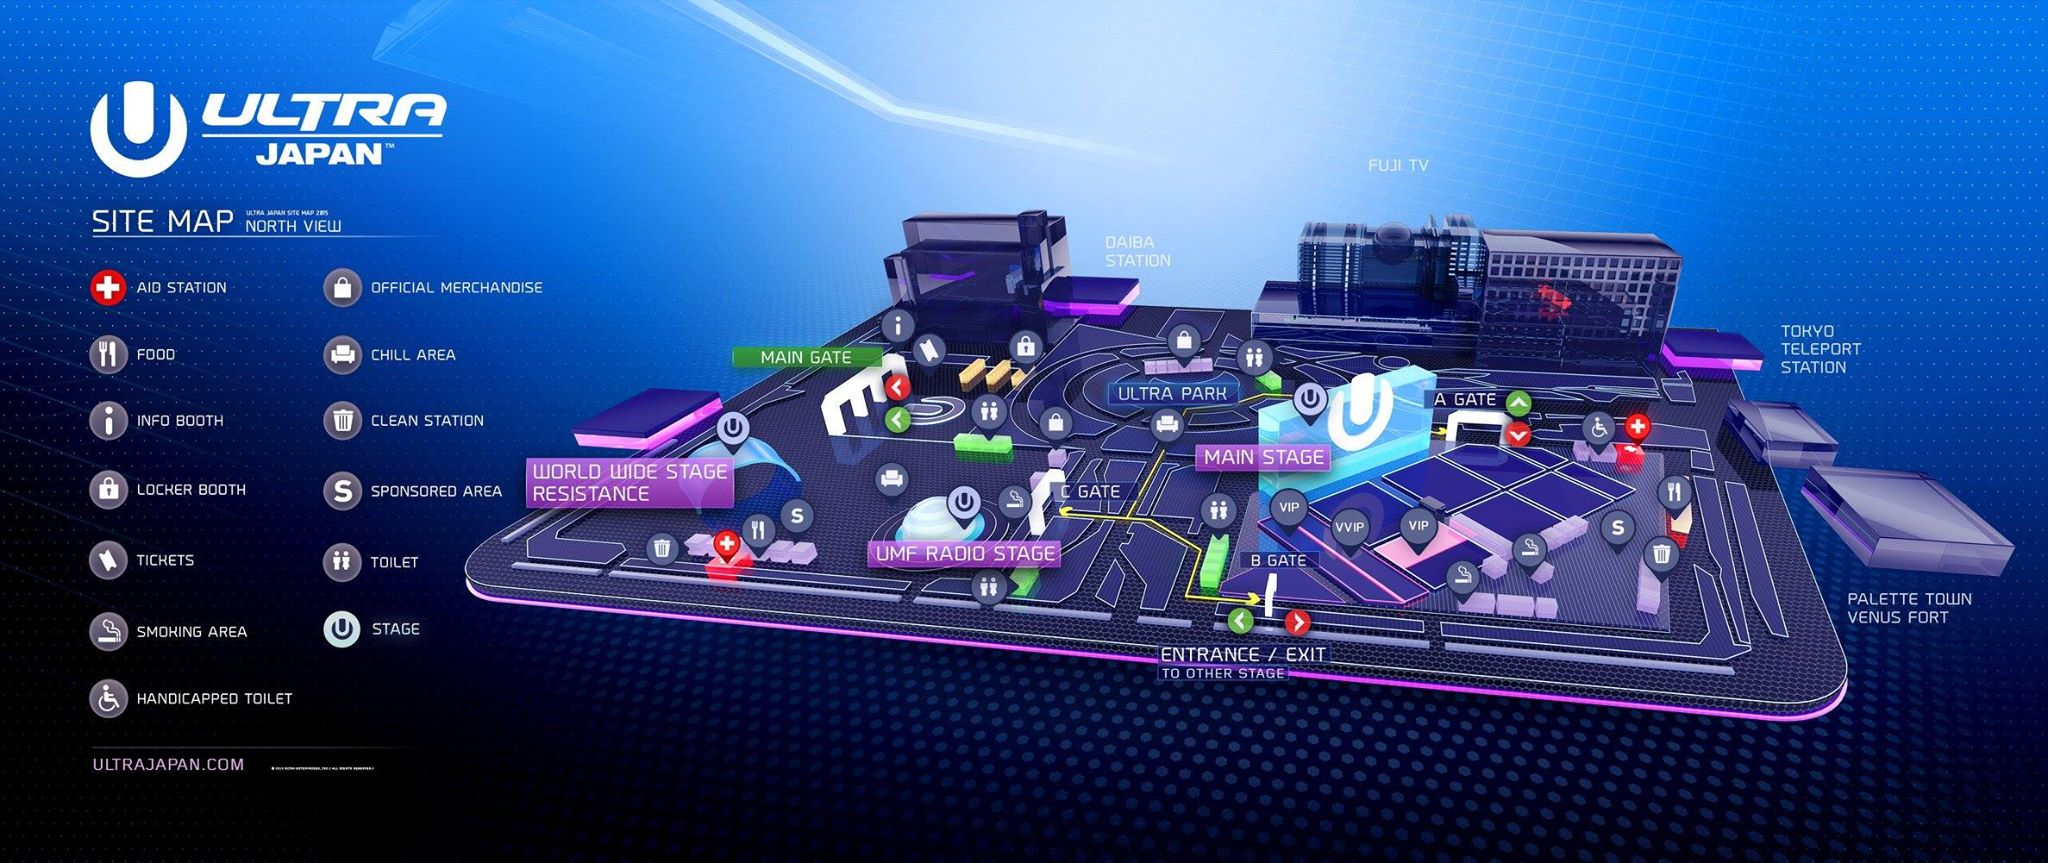 ULTRA JAPAN 2015 SITE MAP